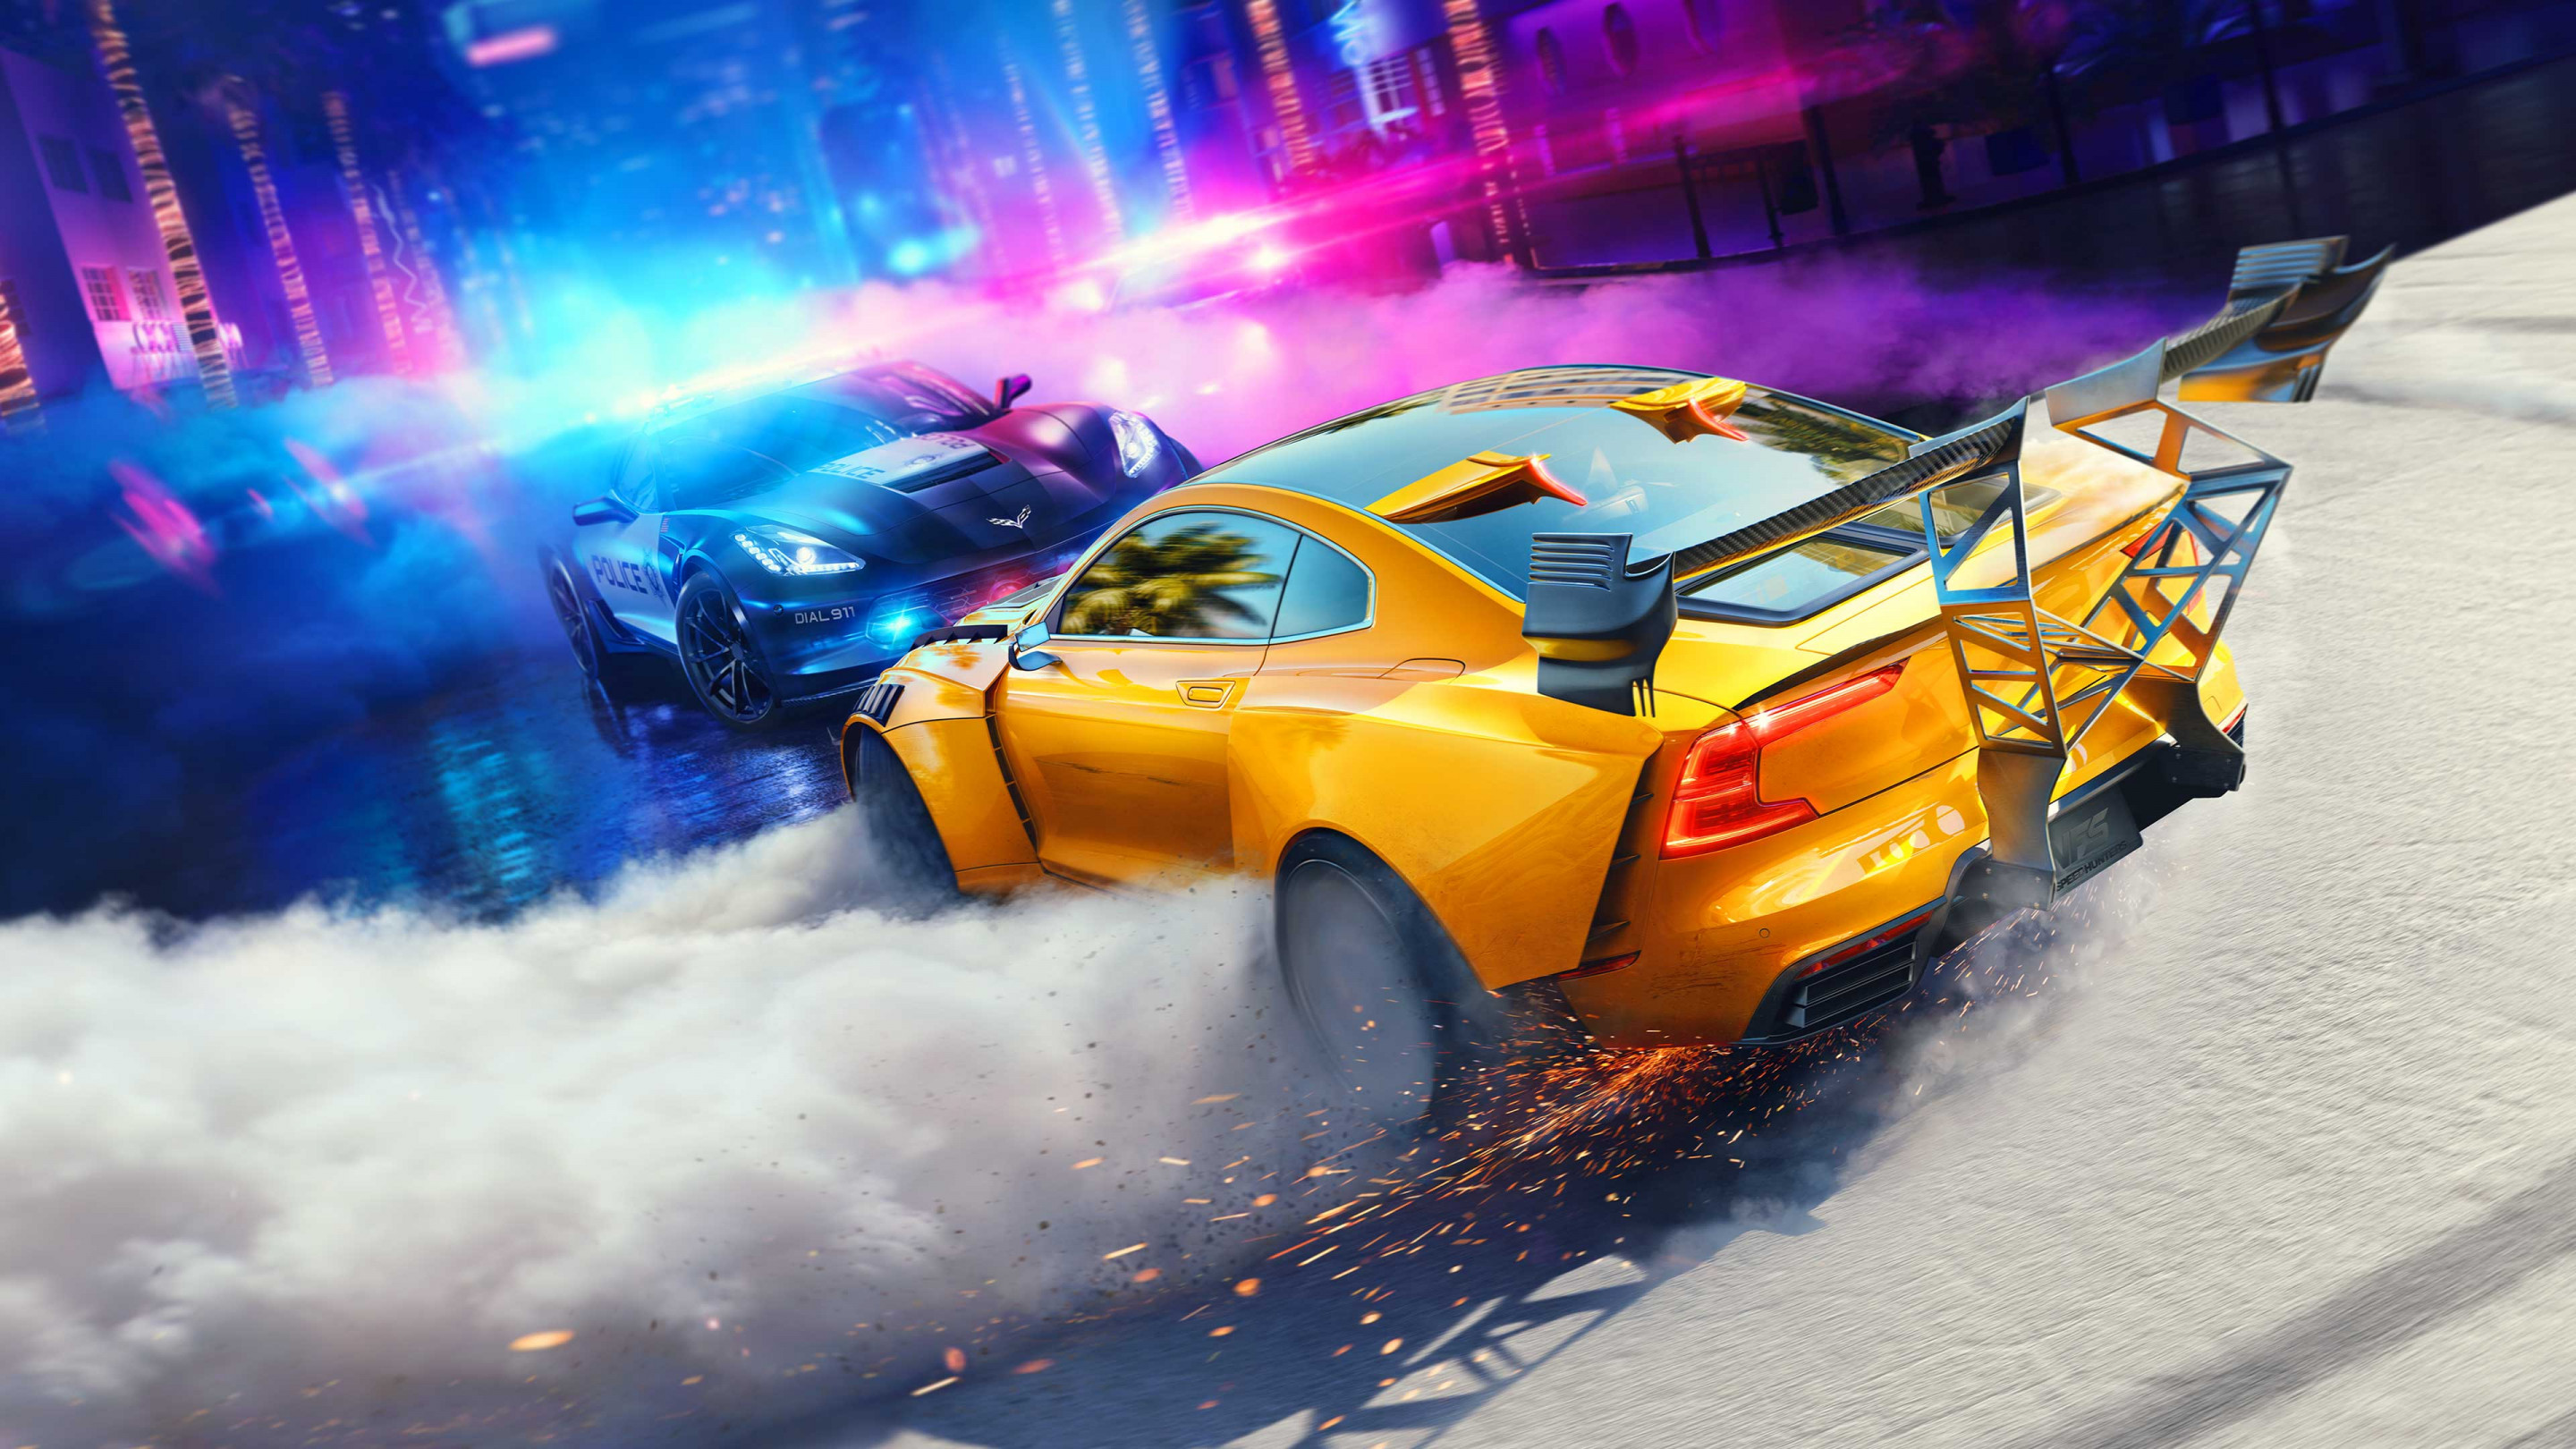 Need for Speed Heat screenshot wallpaper 2880x1620